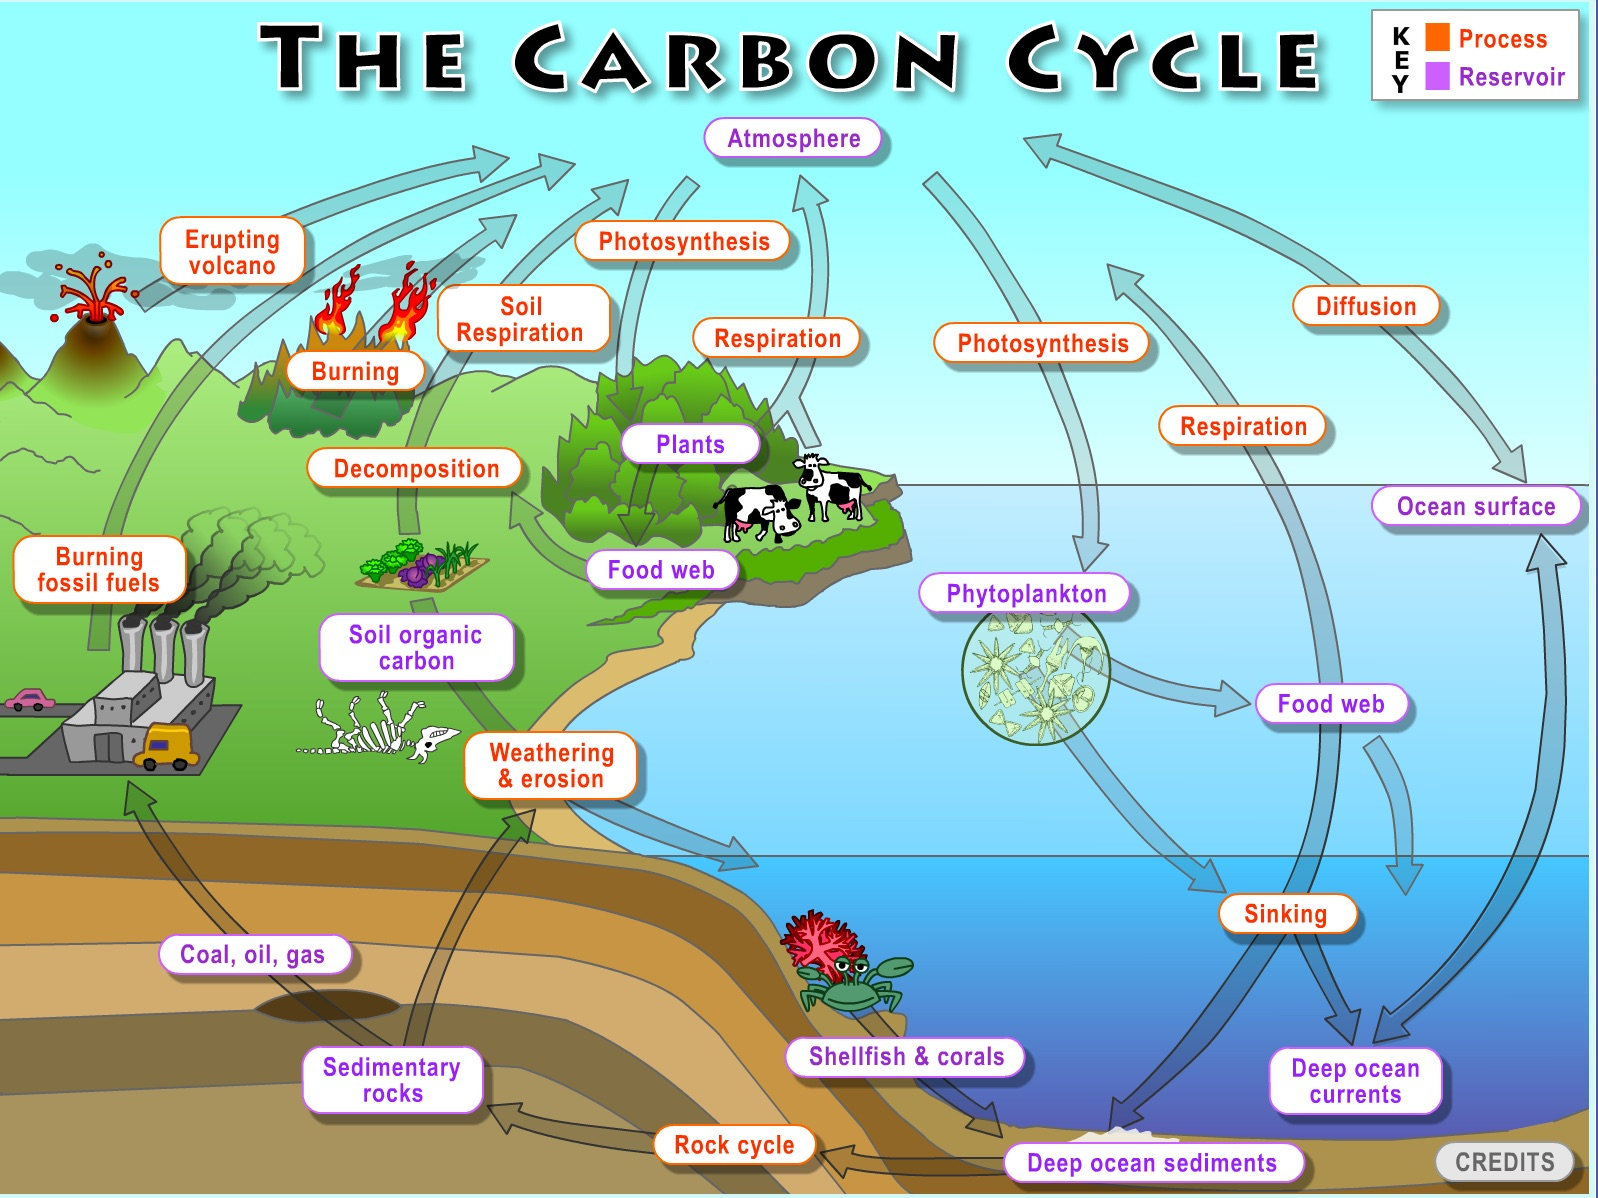 carbon cycle diagram  originally uploaded in clean:teaching climate and  energy:tools for educators:earth systems investigations:carbon cycle